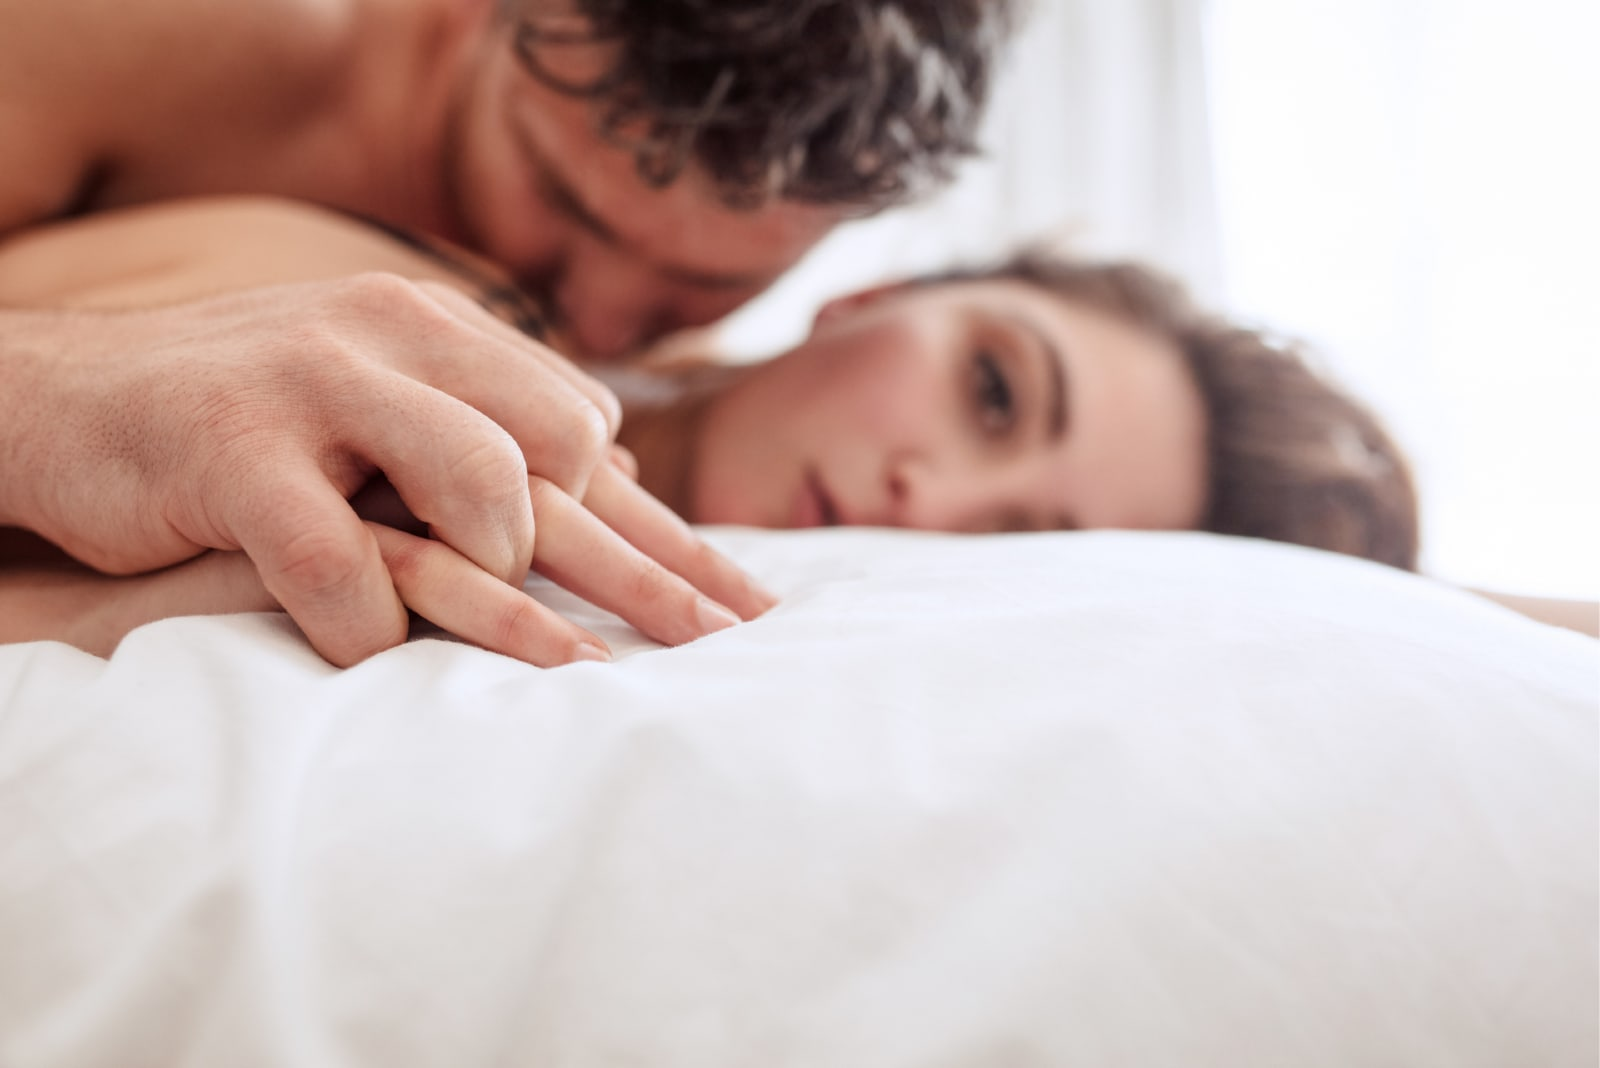 man kissing woman while laying on bed